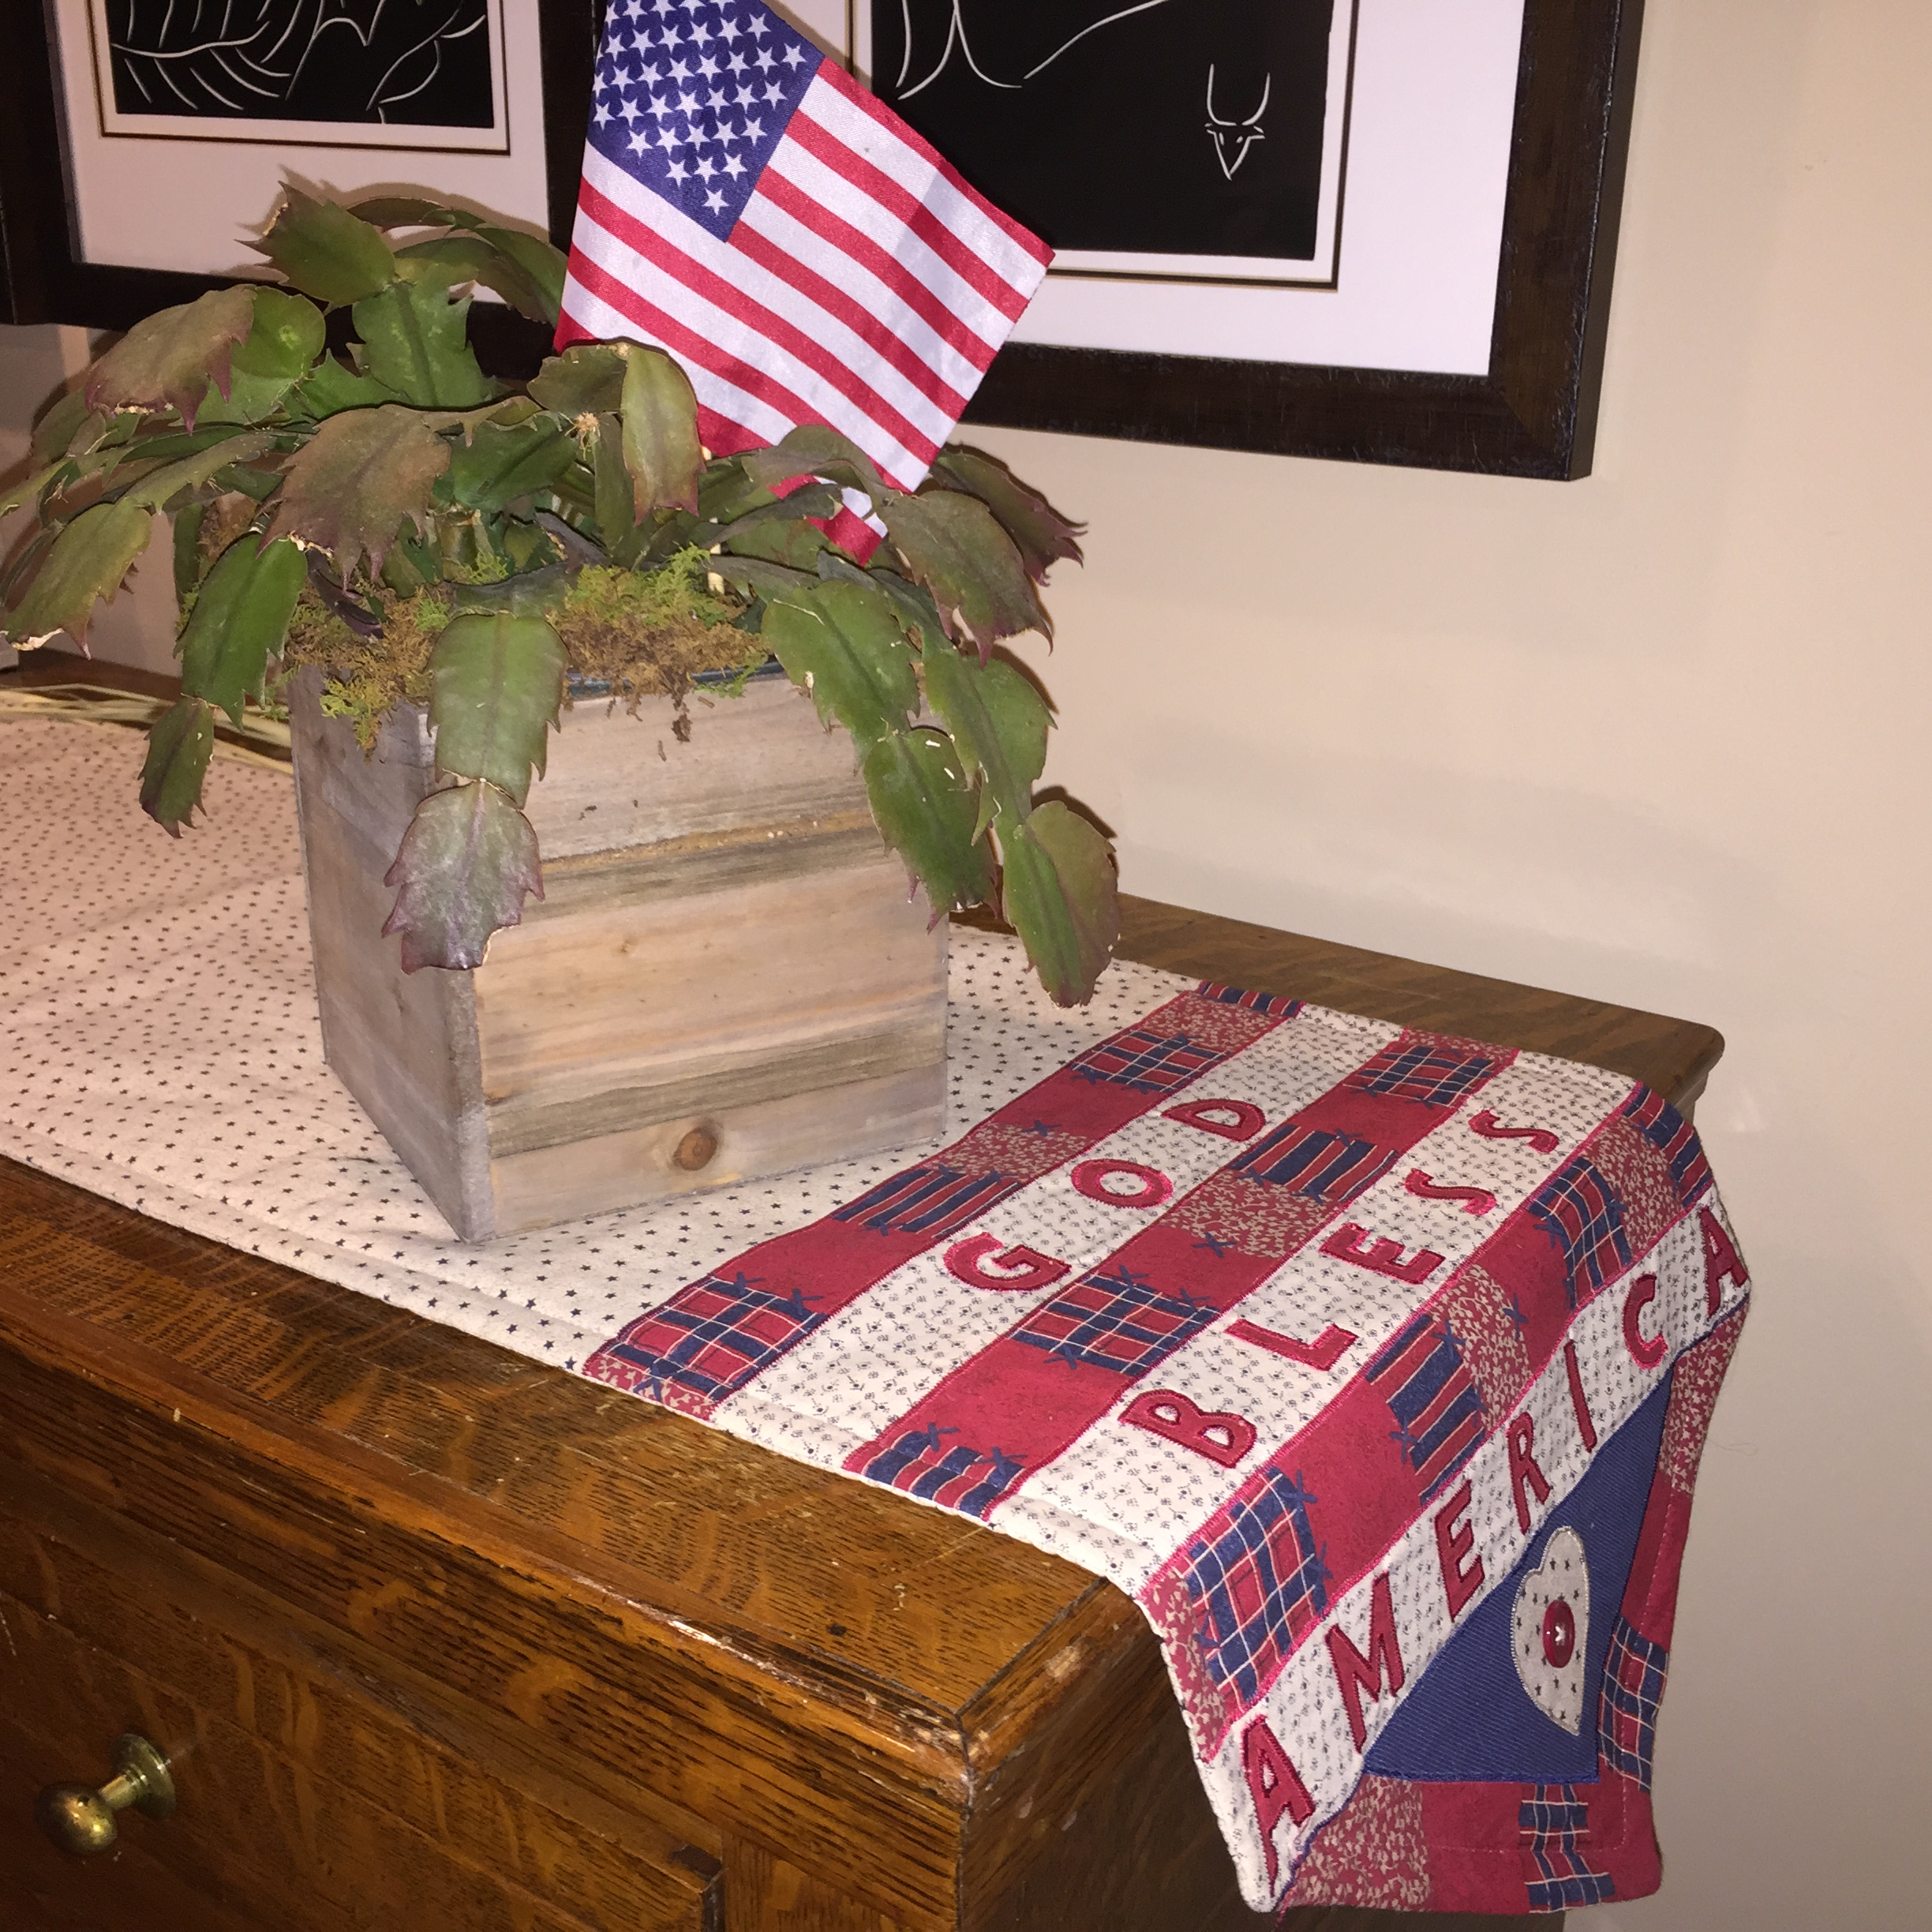 Last year's sale of flags weeks after the Fourth of July were .10 a piece!! Why would a flag ever need to be discounted? Of course I bought a ton! The runner was $1 at Dollar Tree bought almost 10 years ago.